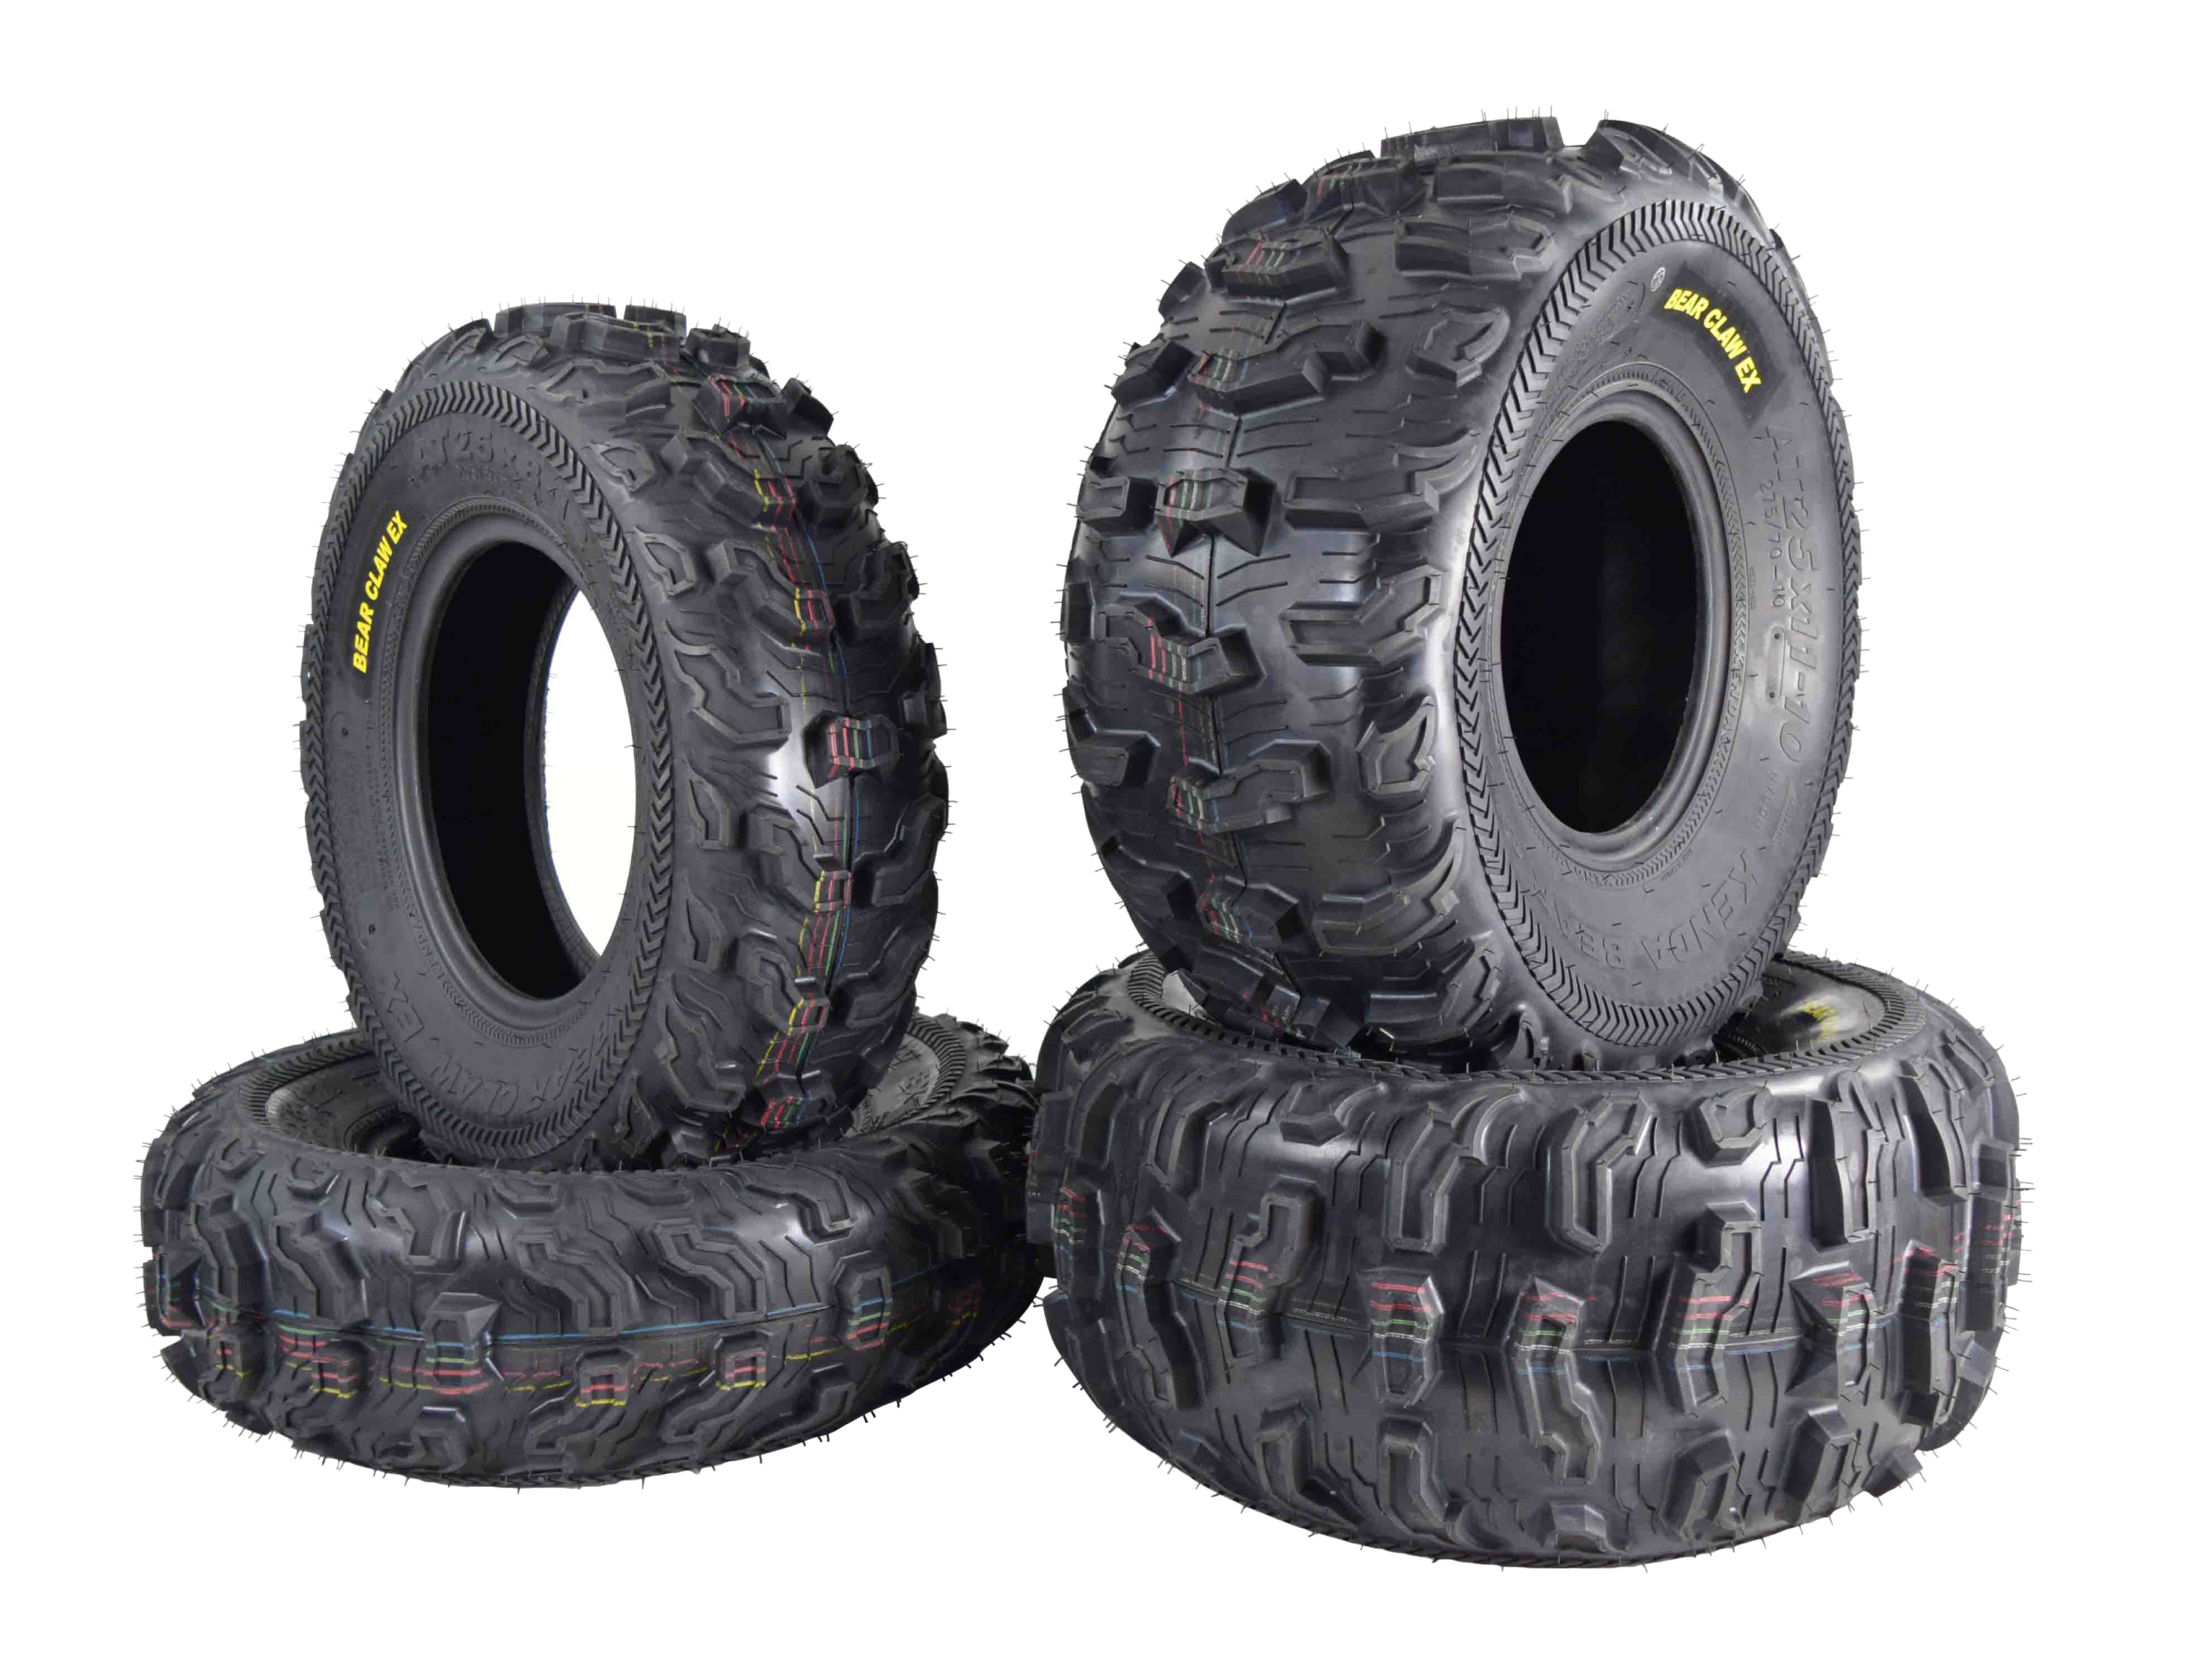 Kenda-Bear-Claw-EX-25x8-12-F-25x11-10-R-ATV-6-PLY-Tires-Bearclaw-4-Pack-Set-image-1